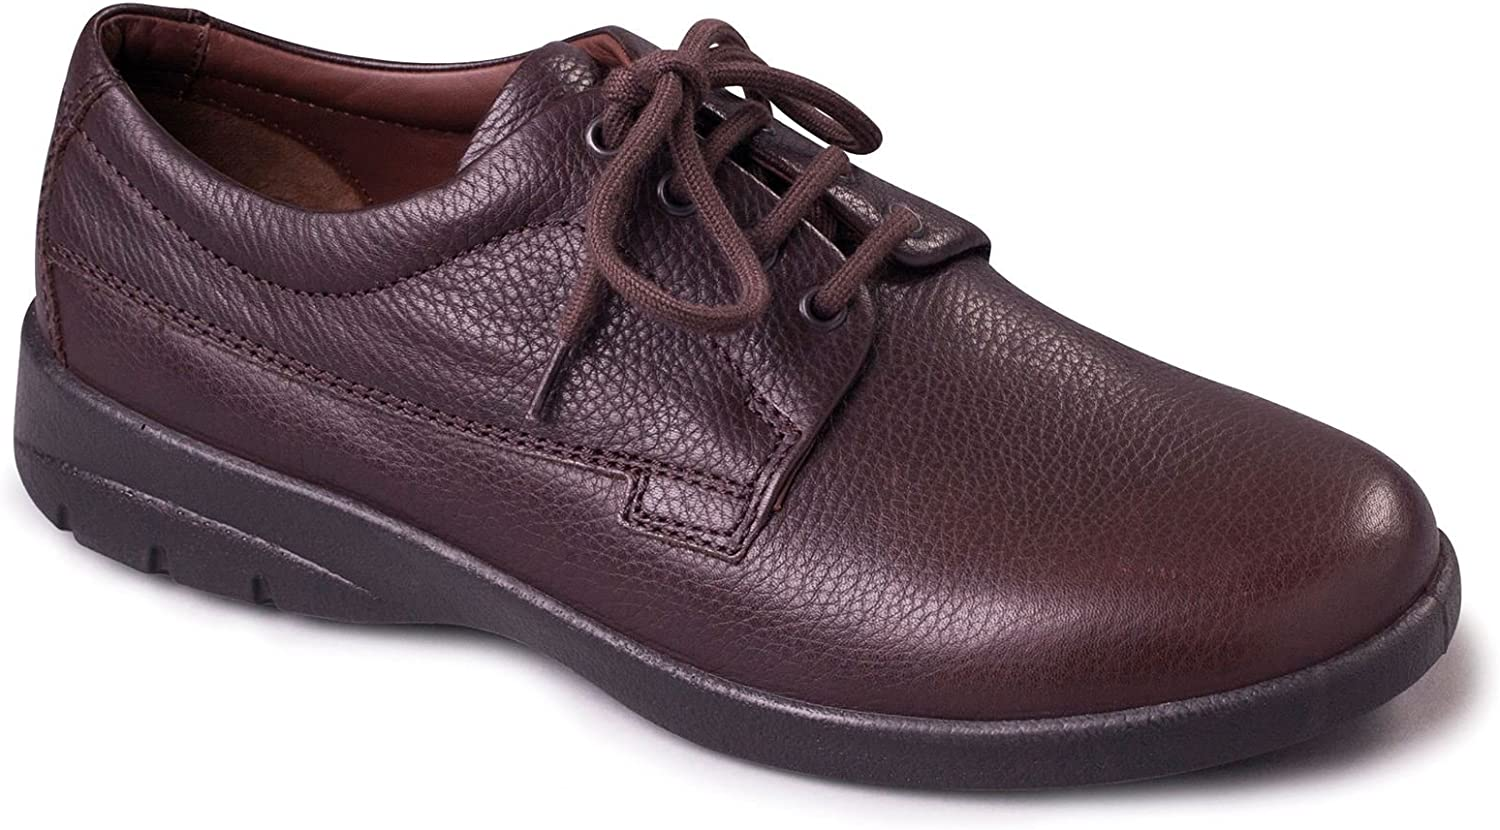 Padders Mens Shoes - Lunar - Leather